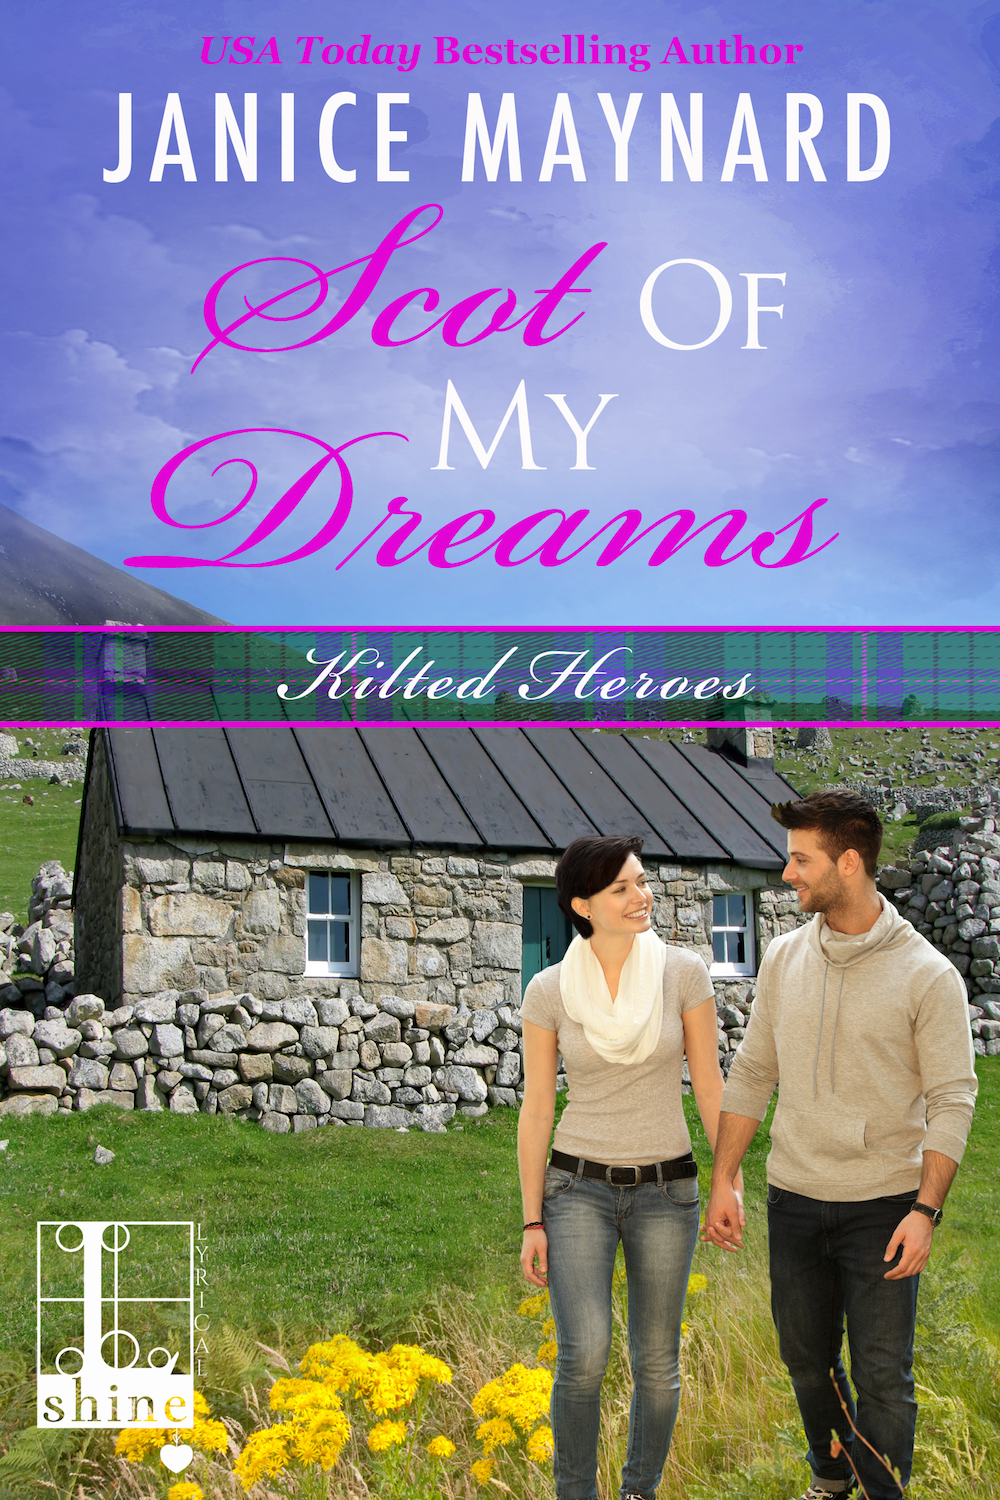 Scot of My Dreams Book 2